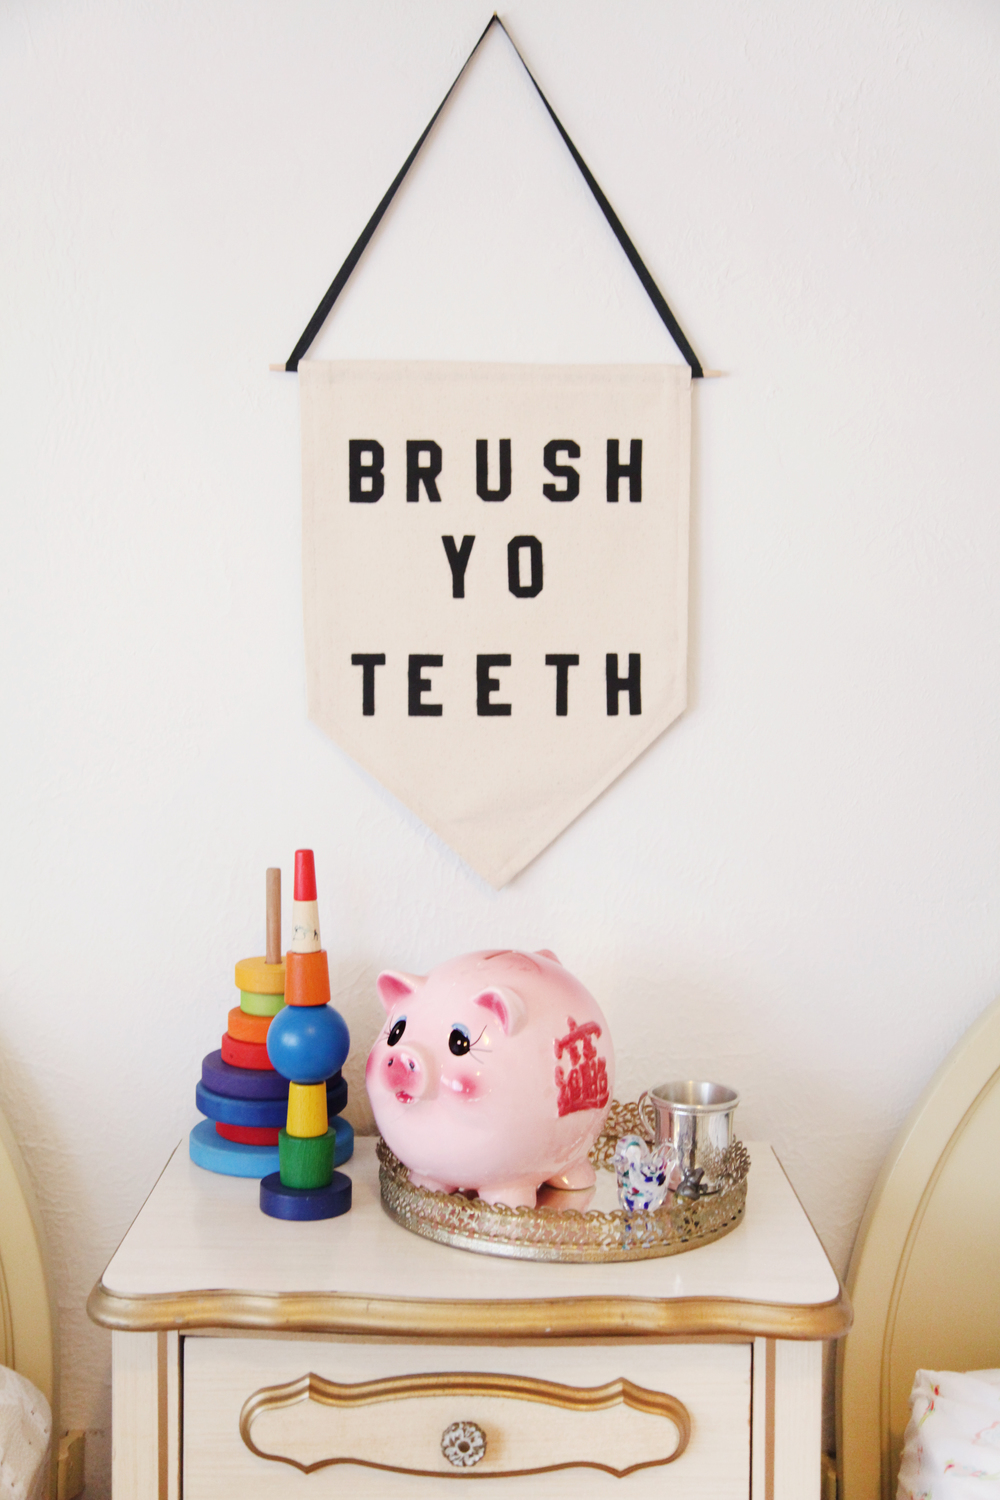 BRUSH YO TEETH wall hanging made by a Brooklyn friend,   Rayo & Honey .